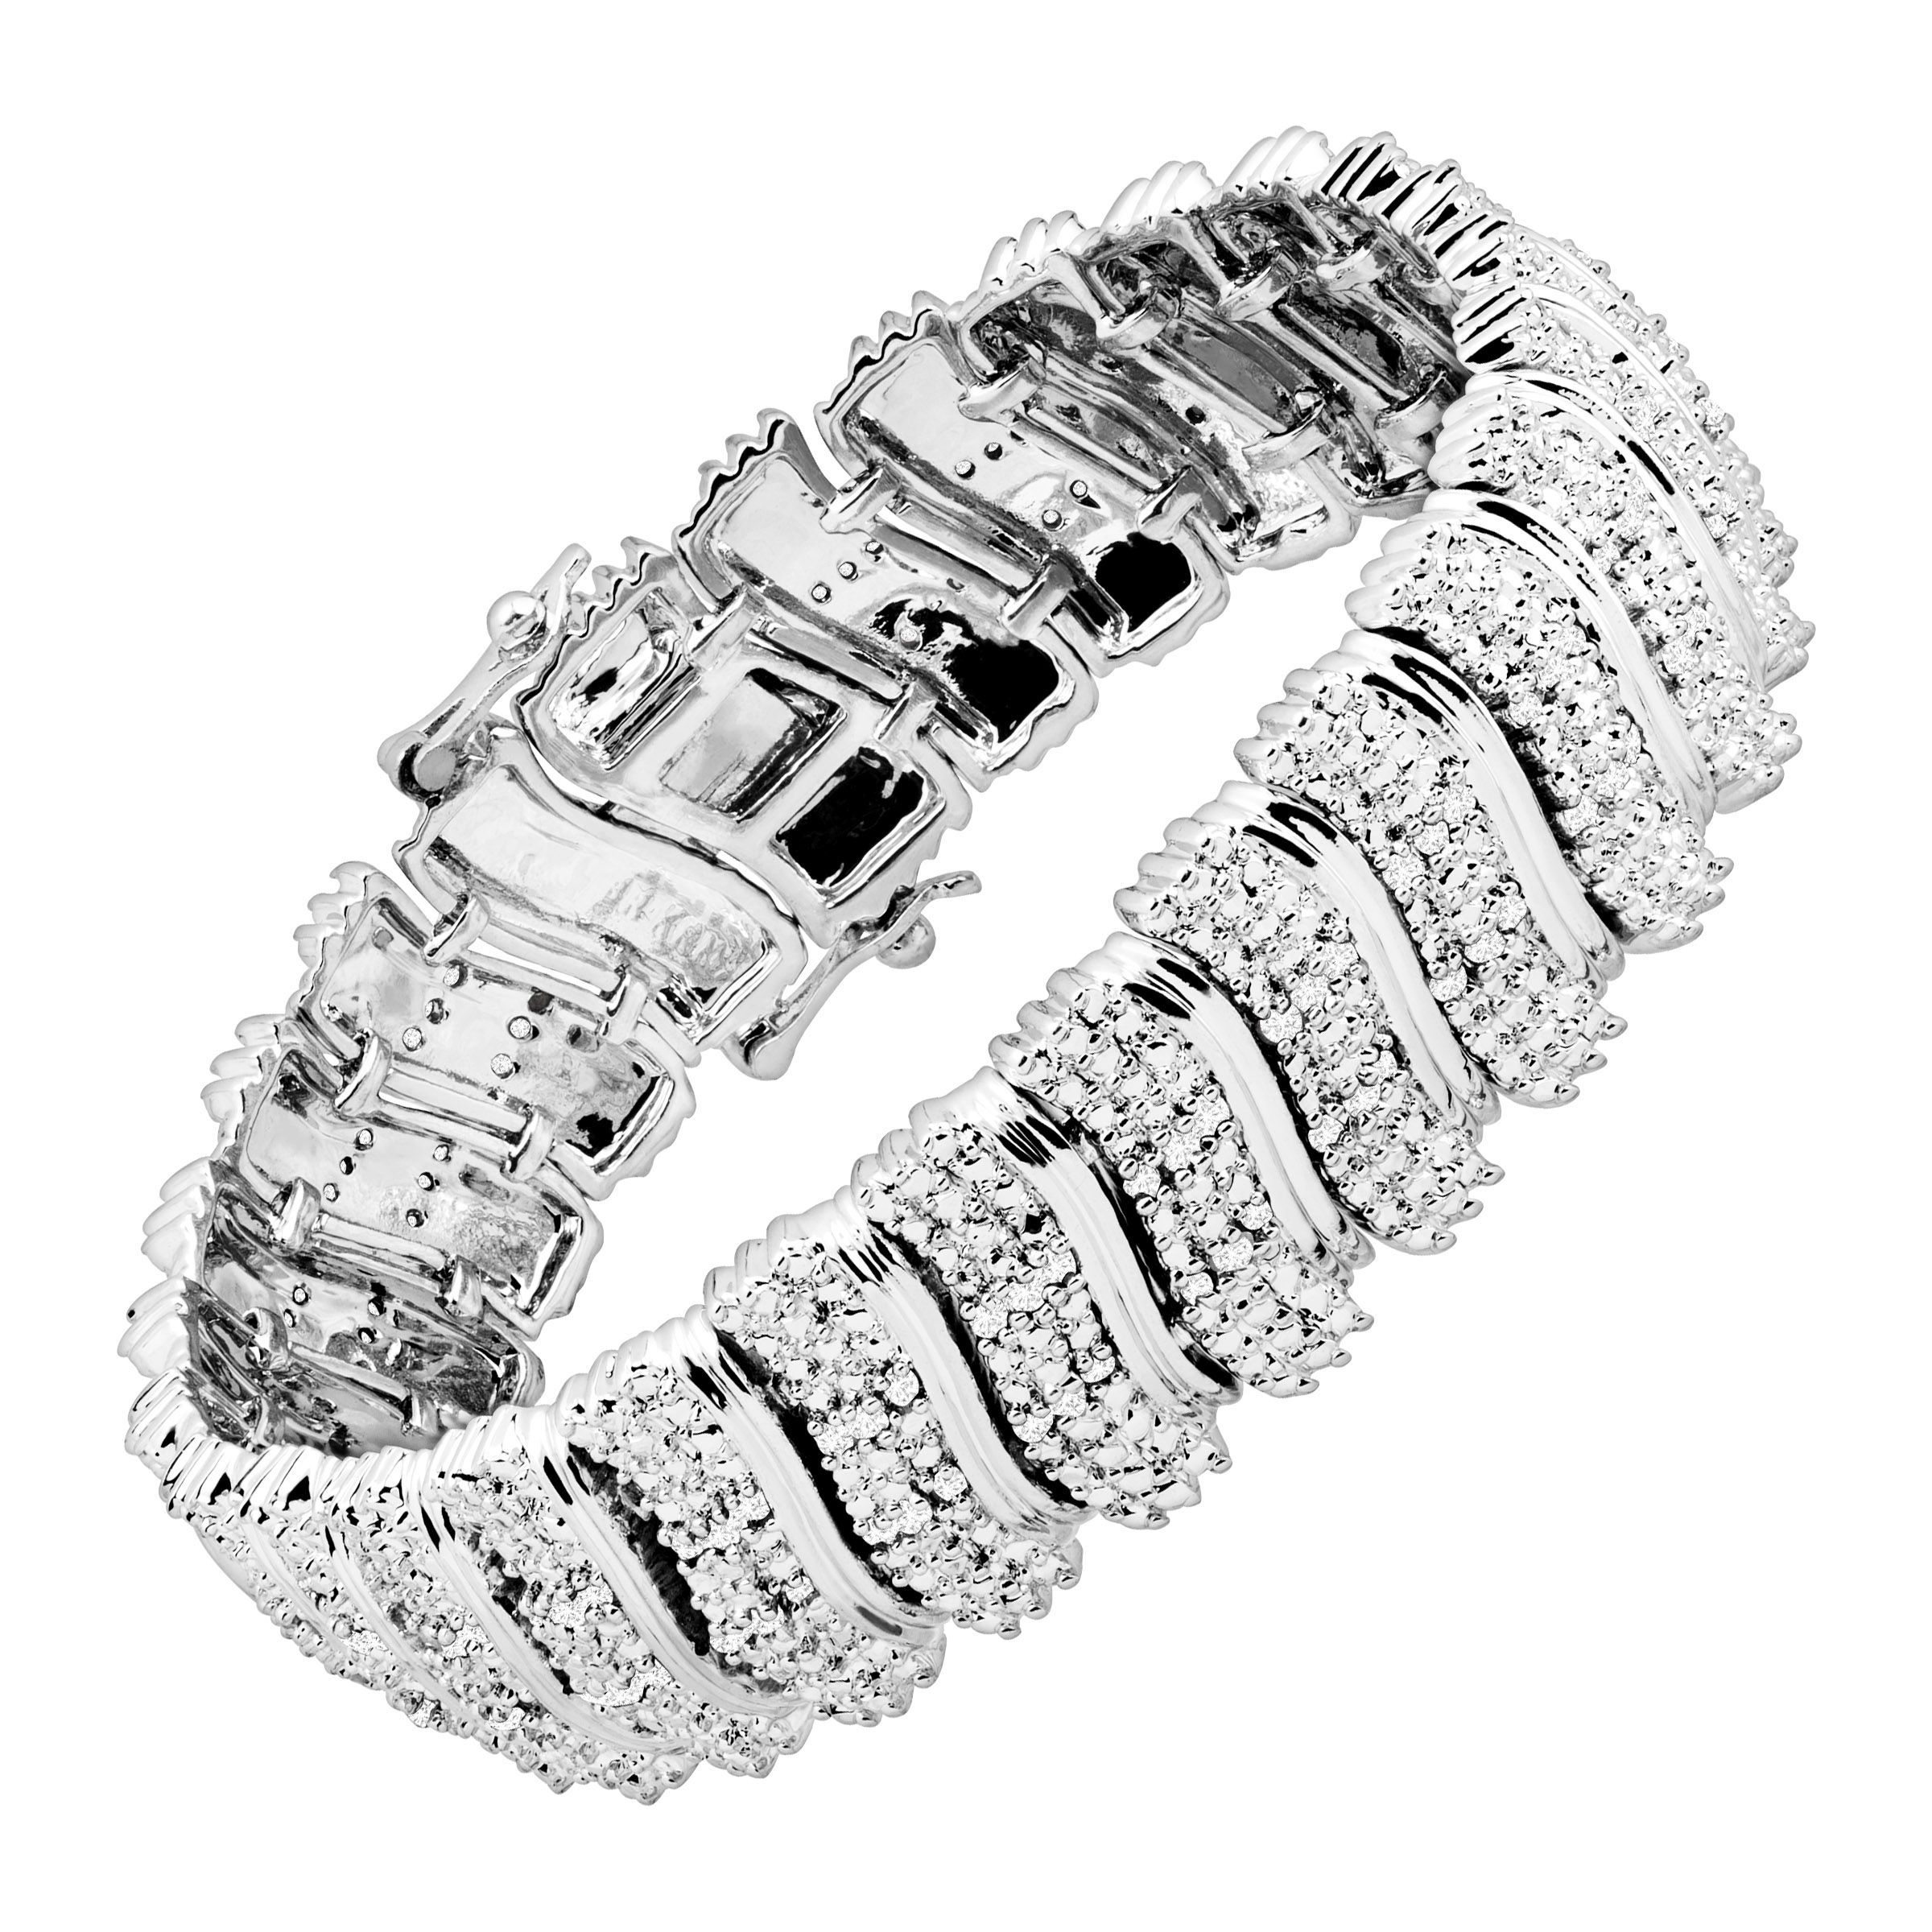 2-ct-039-S-039-Link-Tennis-Bracelet-in-Rhodium-Plated-Brass